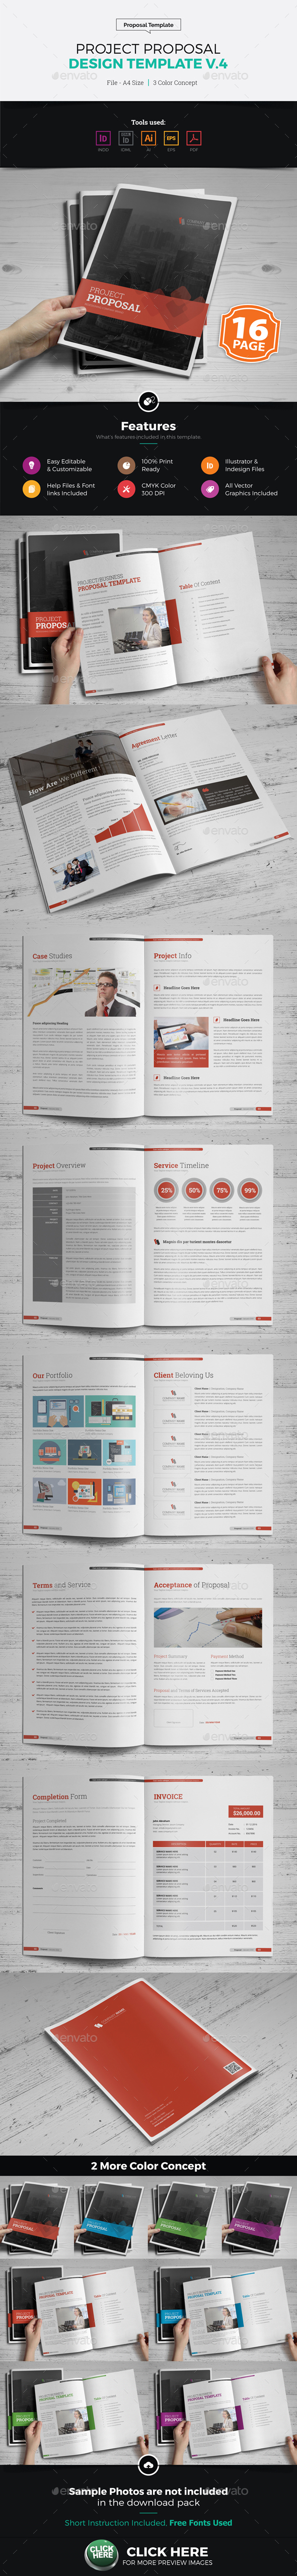 Project & Business Proposal Design v4 - Proposals & Invoices Stationery